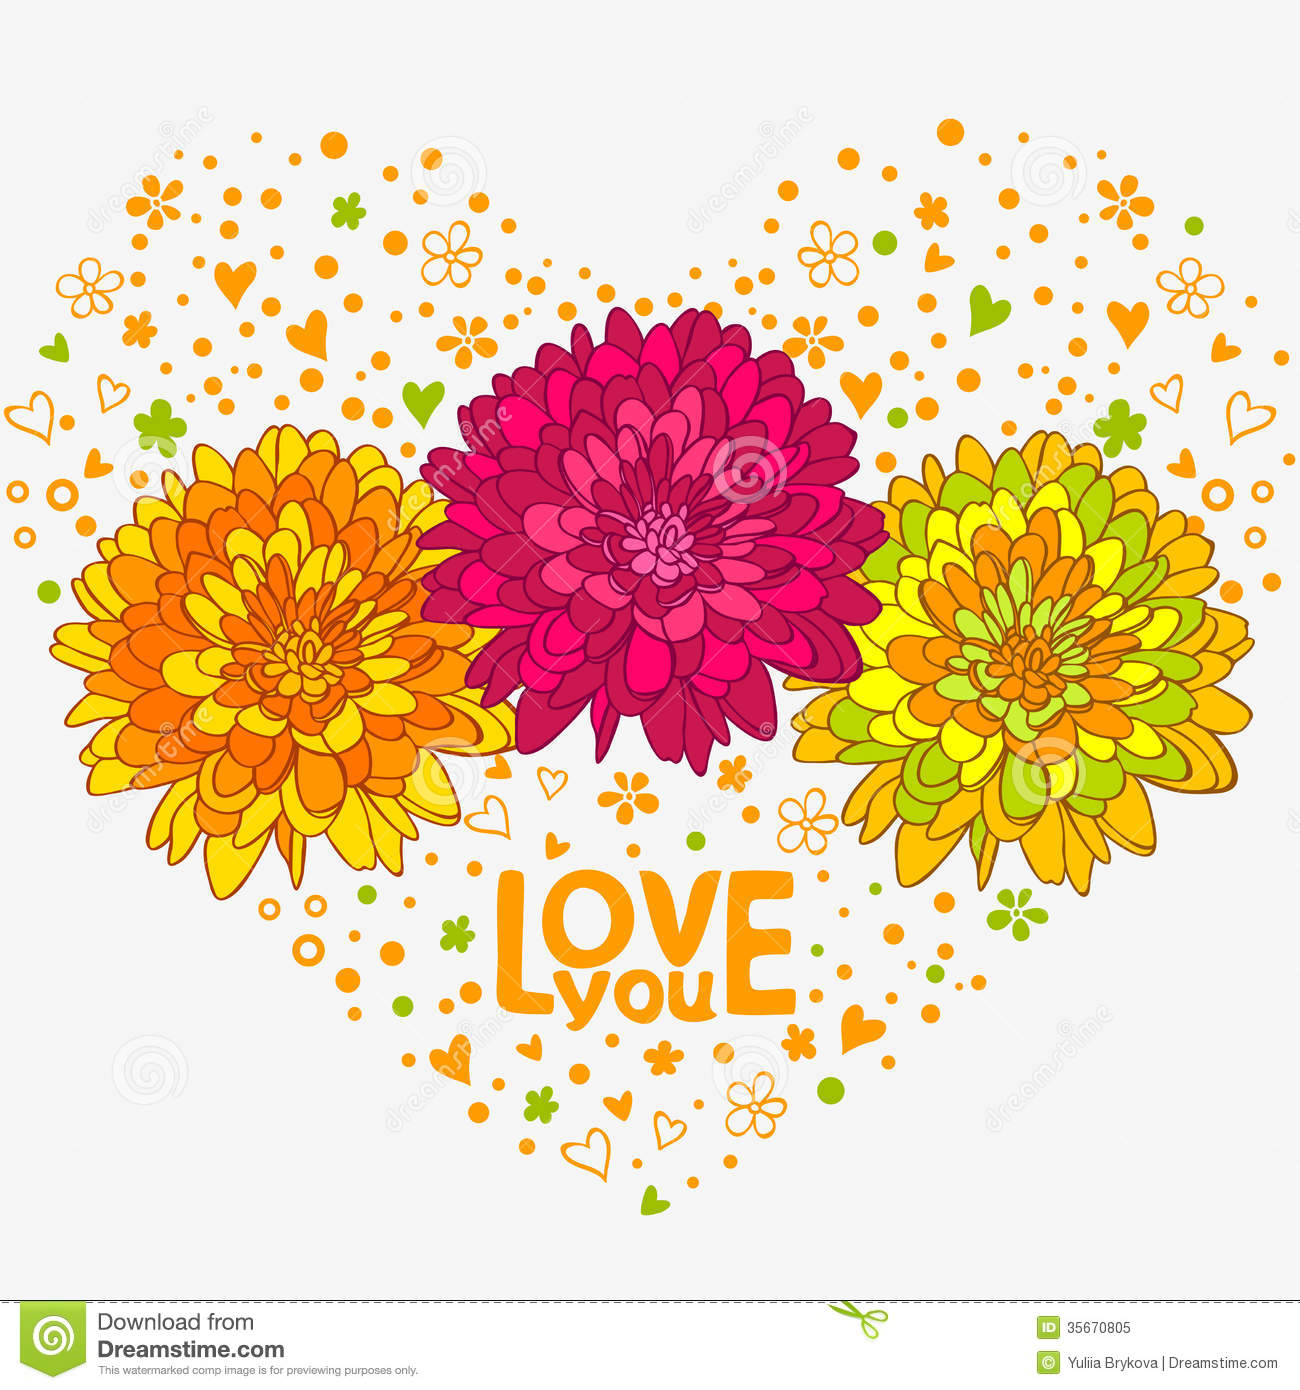 Flowers hearts stock illustration illustration of greetings 35670805 flowers hearts izmirmasajfo Choice Image